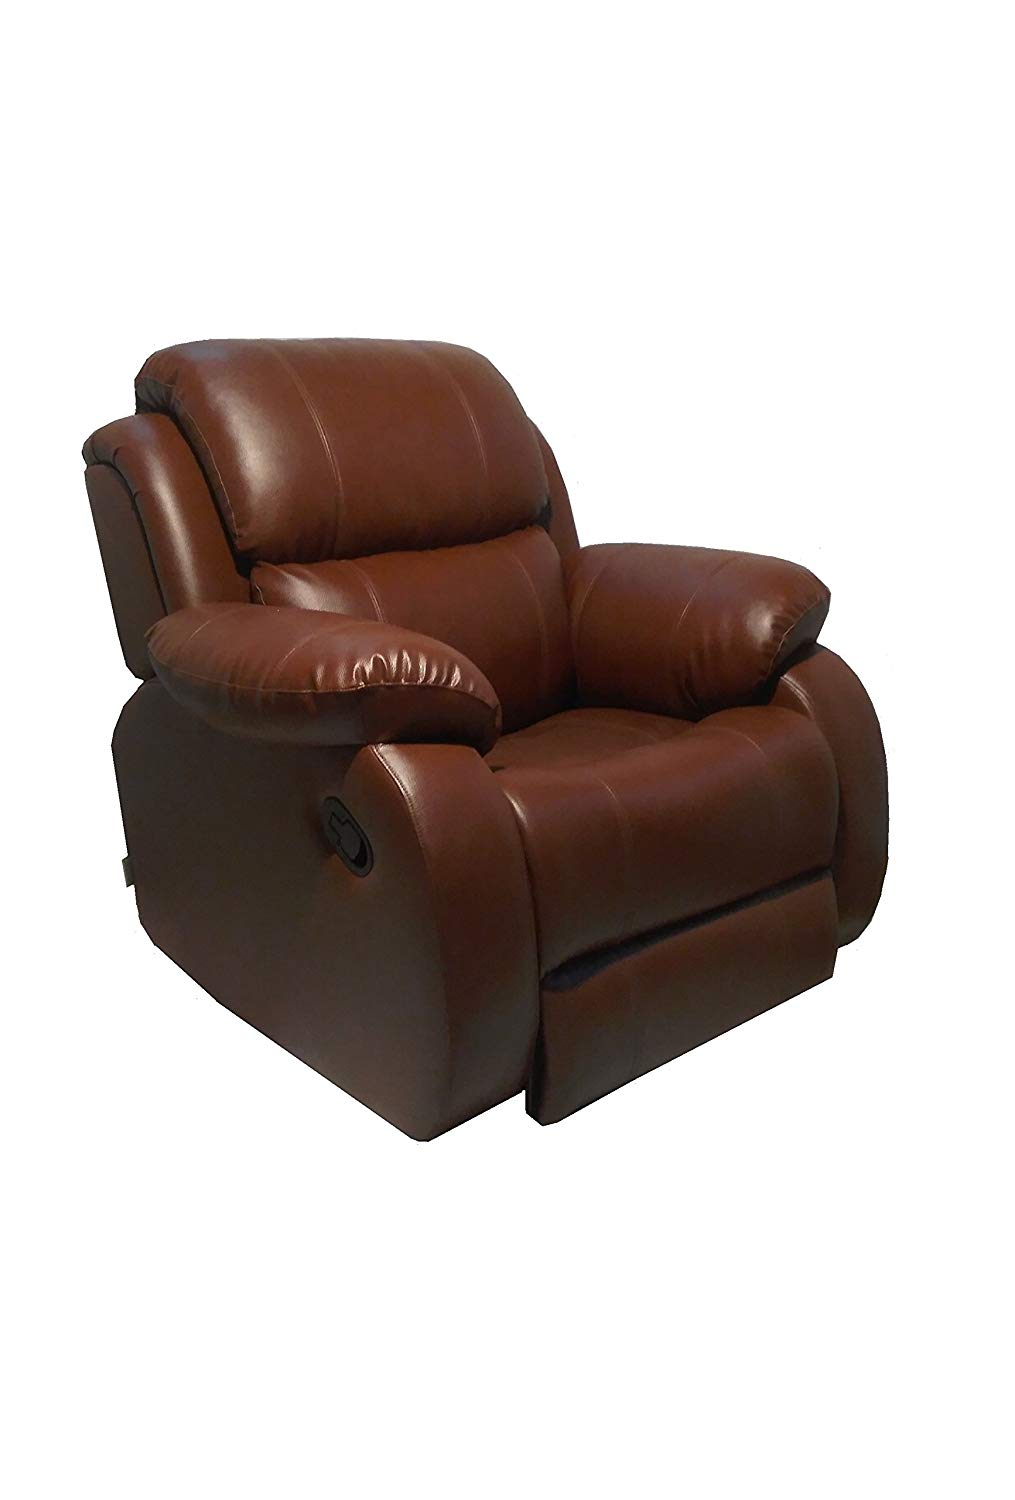 Innovative Manual Sofa and Recliner Chair